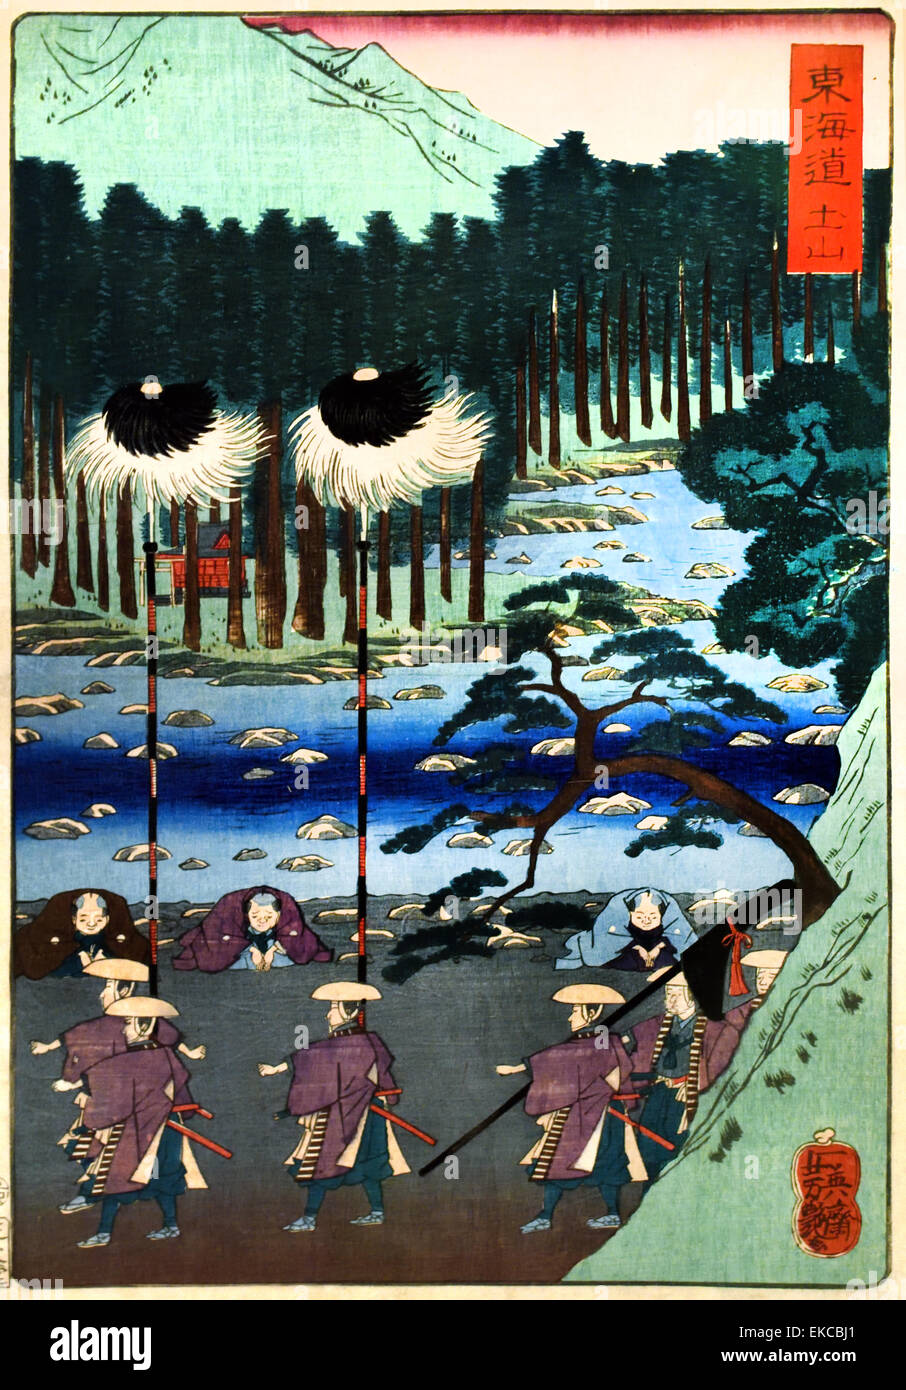 Tsuchiyama, from the series Scenes of Famous Places along the Tôkaidô Road (Tôkaidô meisho fûkei), - Stock Image